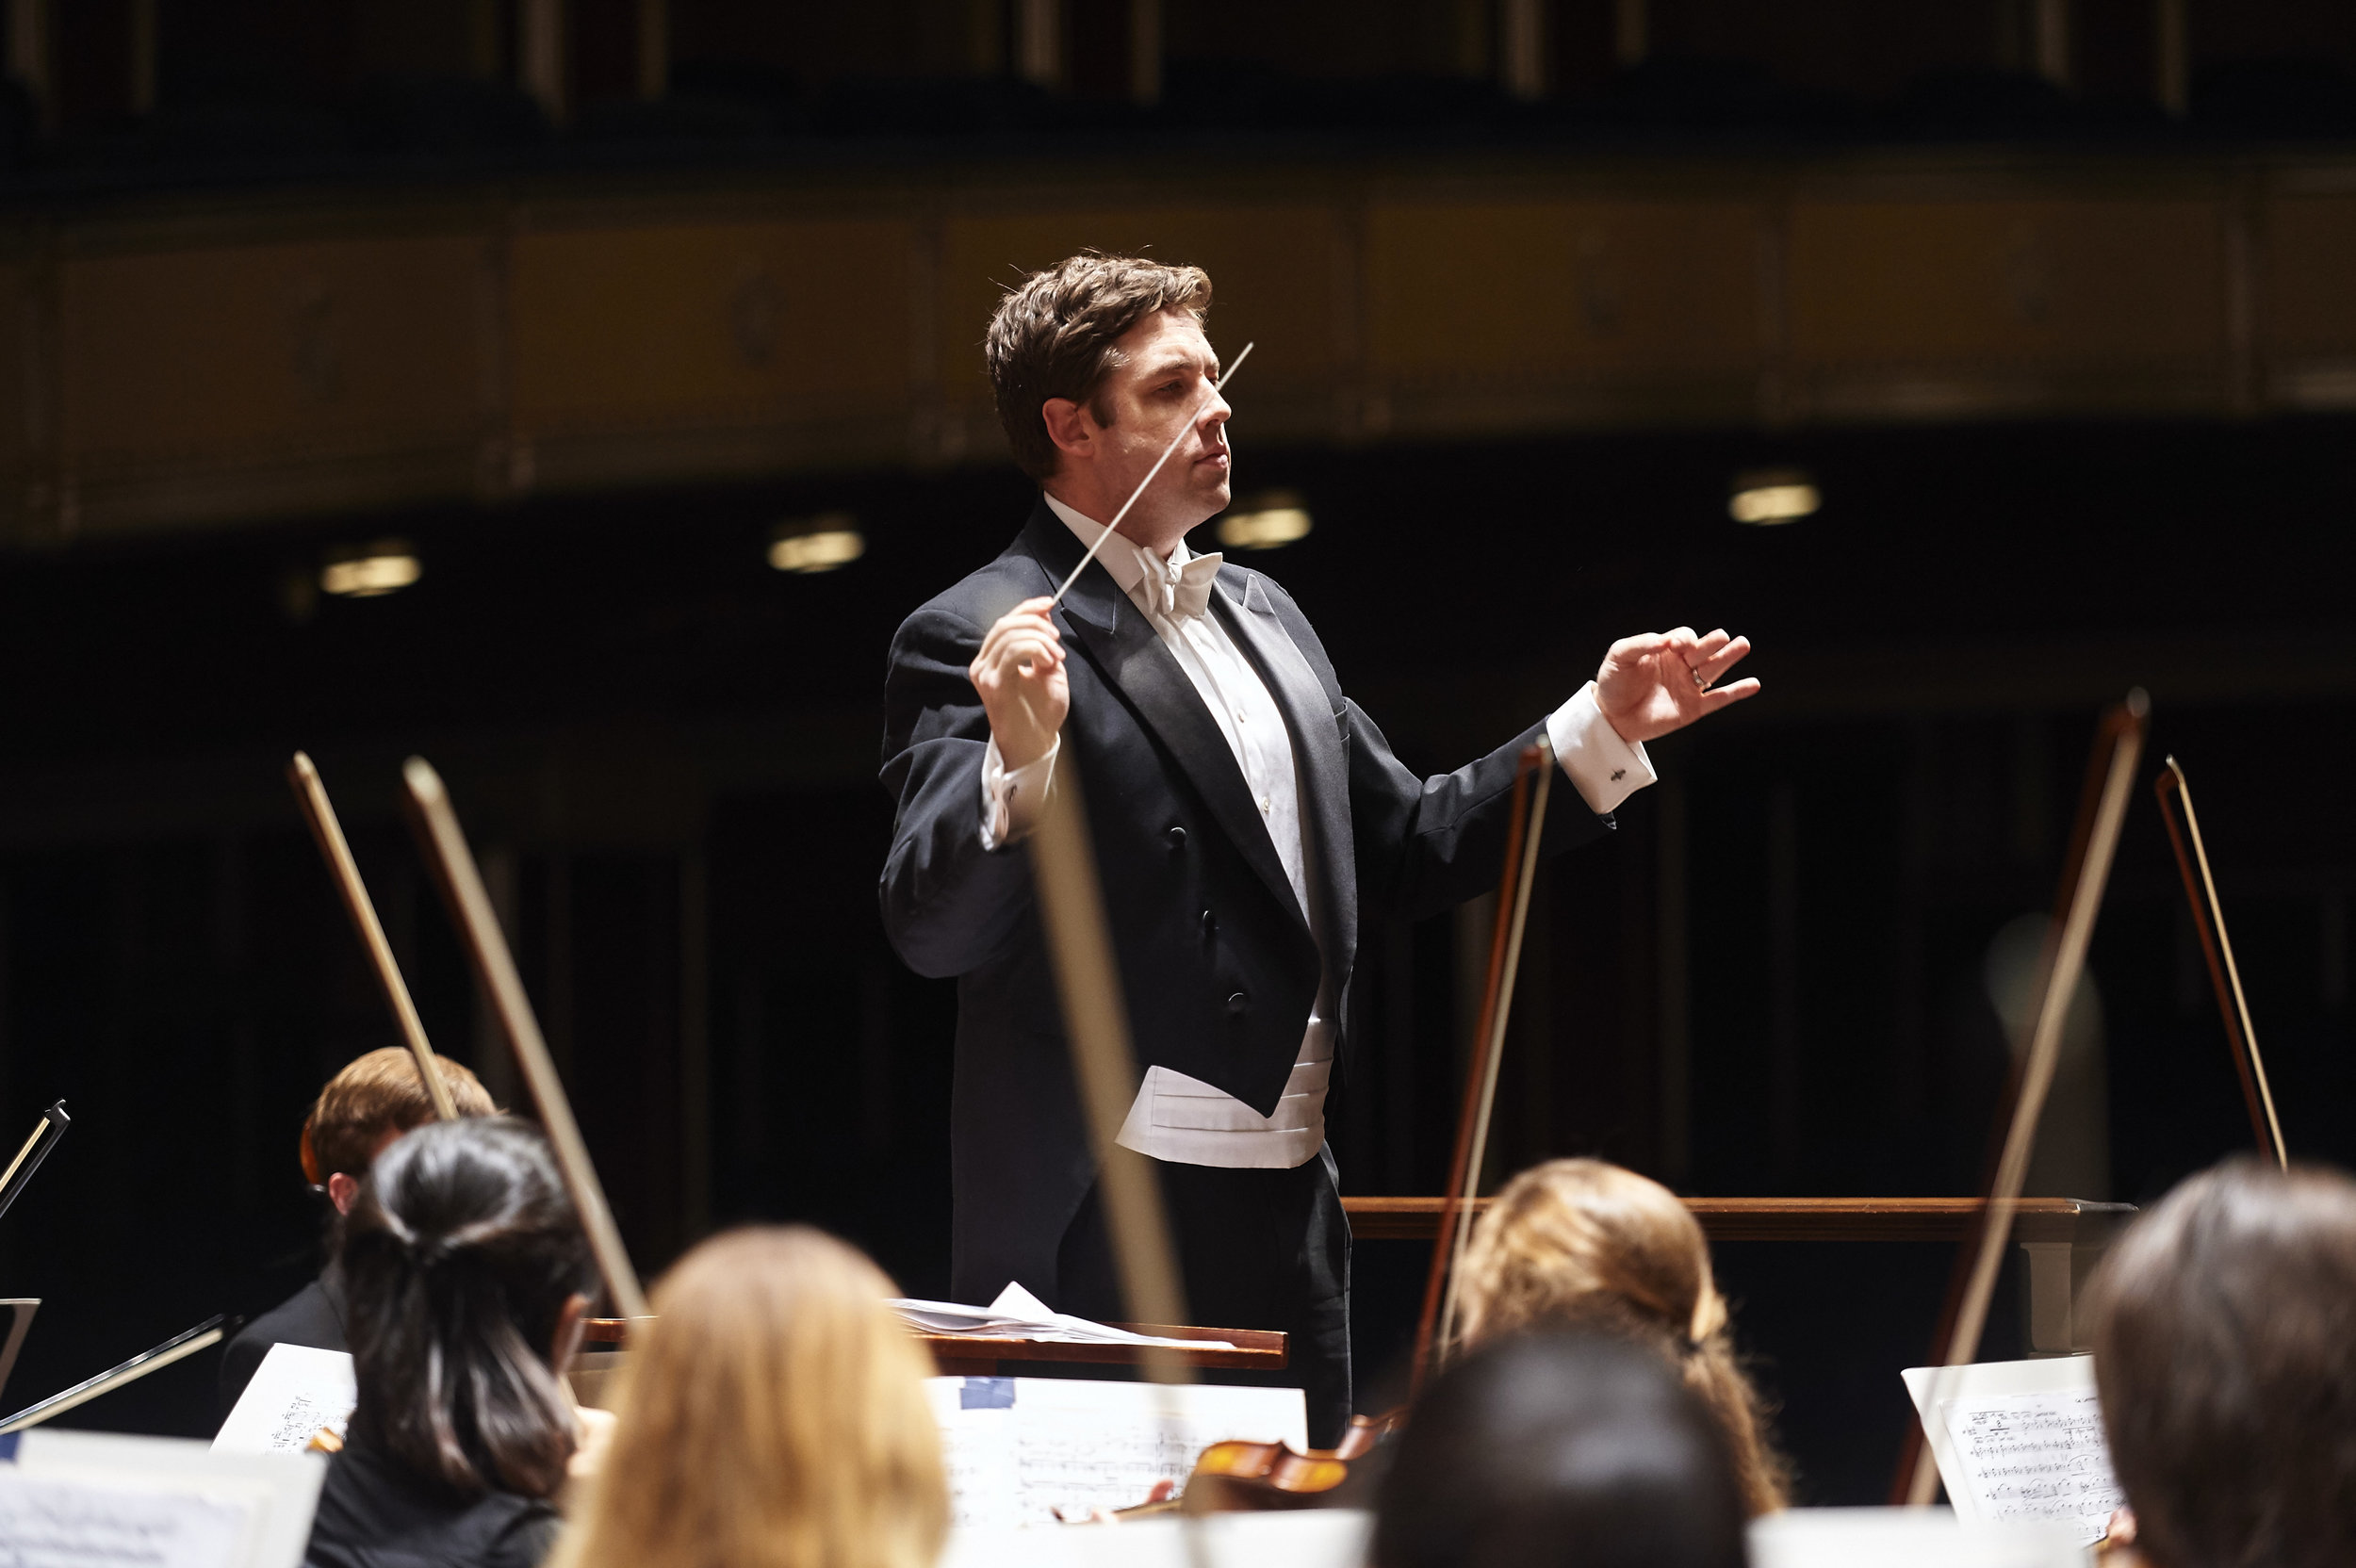 Brett Mitchell conducts the Cleveland Orchestra Youth Orchestra in performance at Severance Hall. (Photo by Roger Mastroianni)